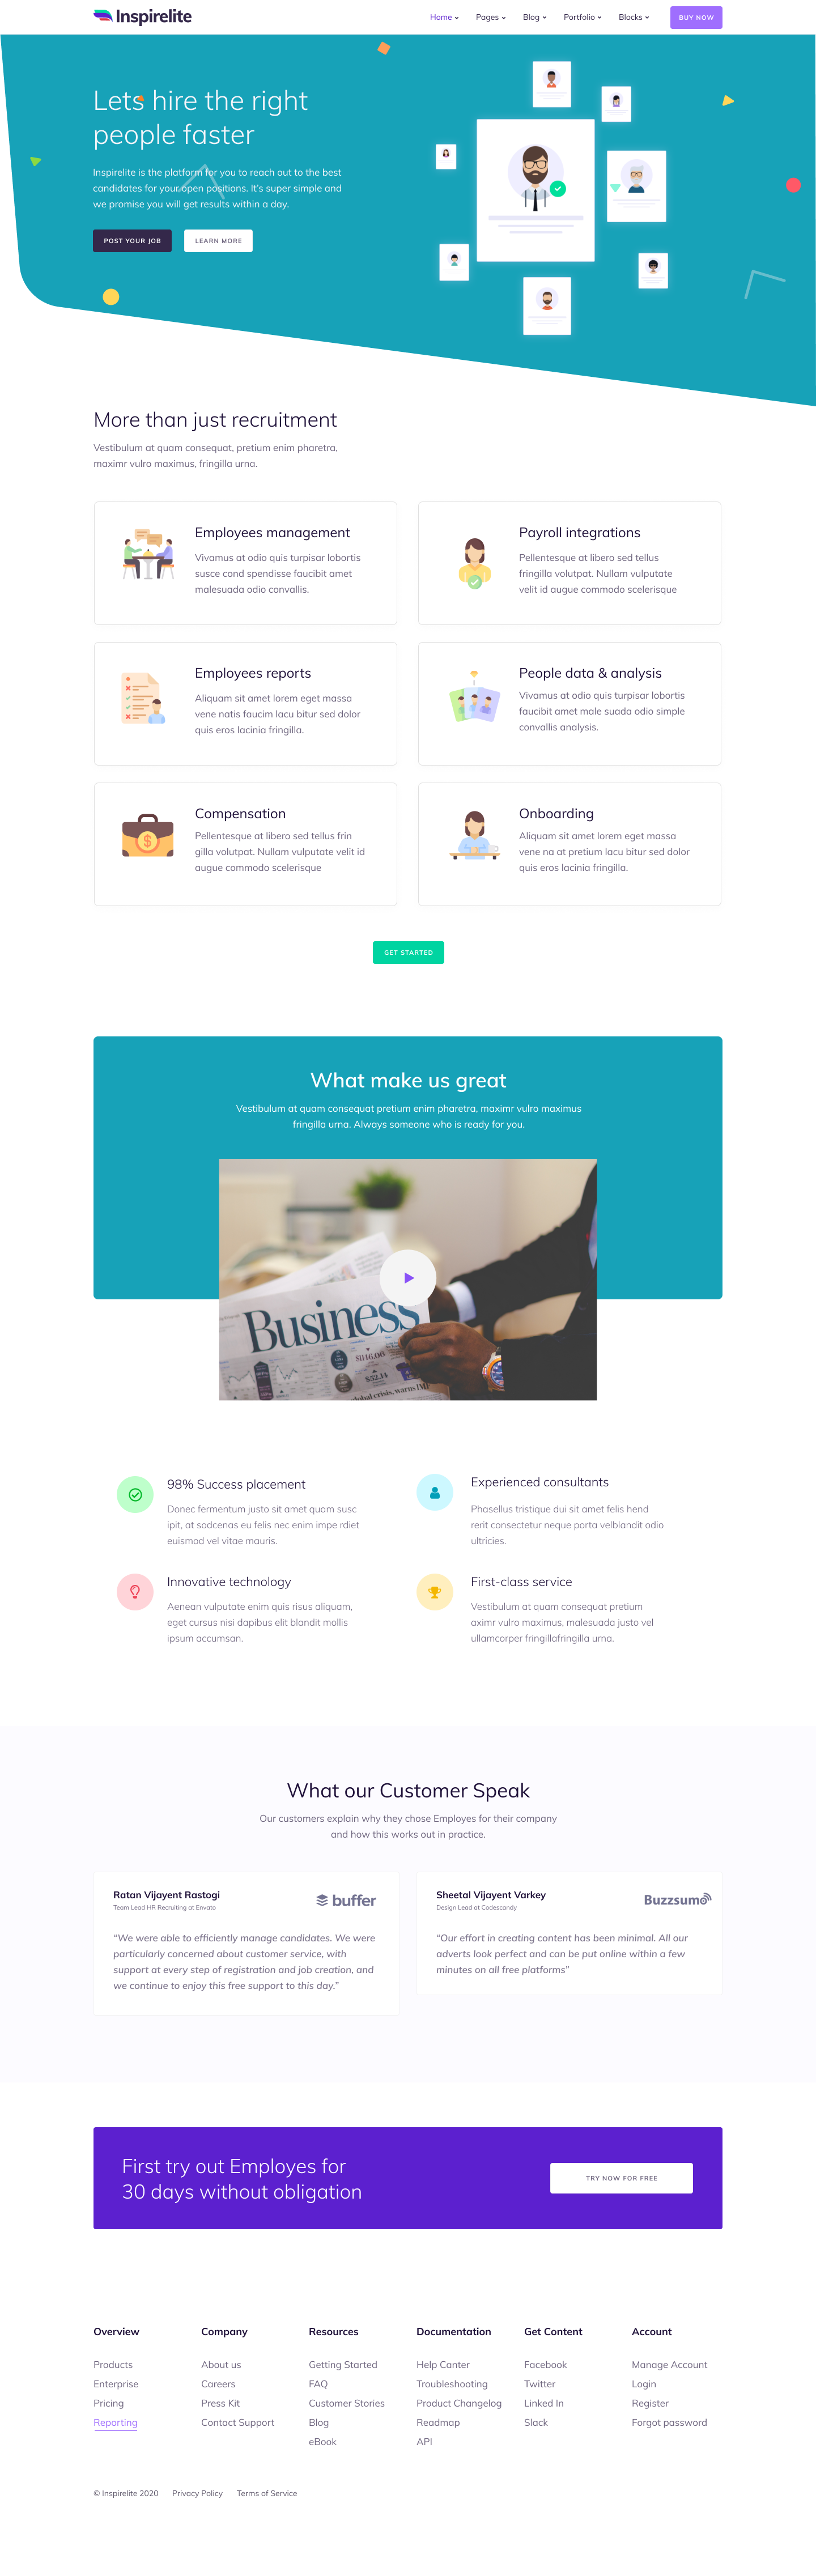 Hr Service Landing Page Template 2020 High Converting Leads In 2020 Consulting Website Website Design Website Template